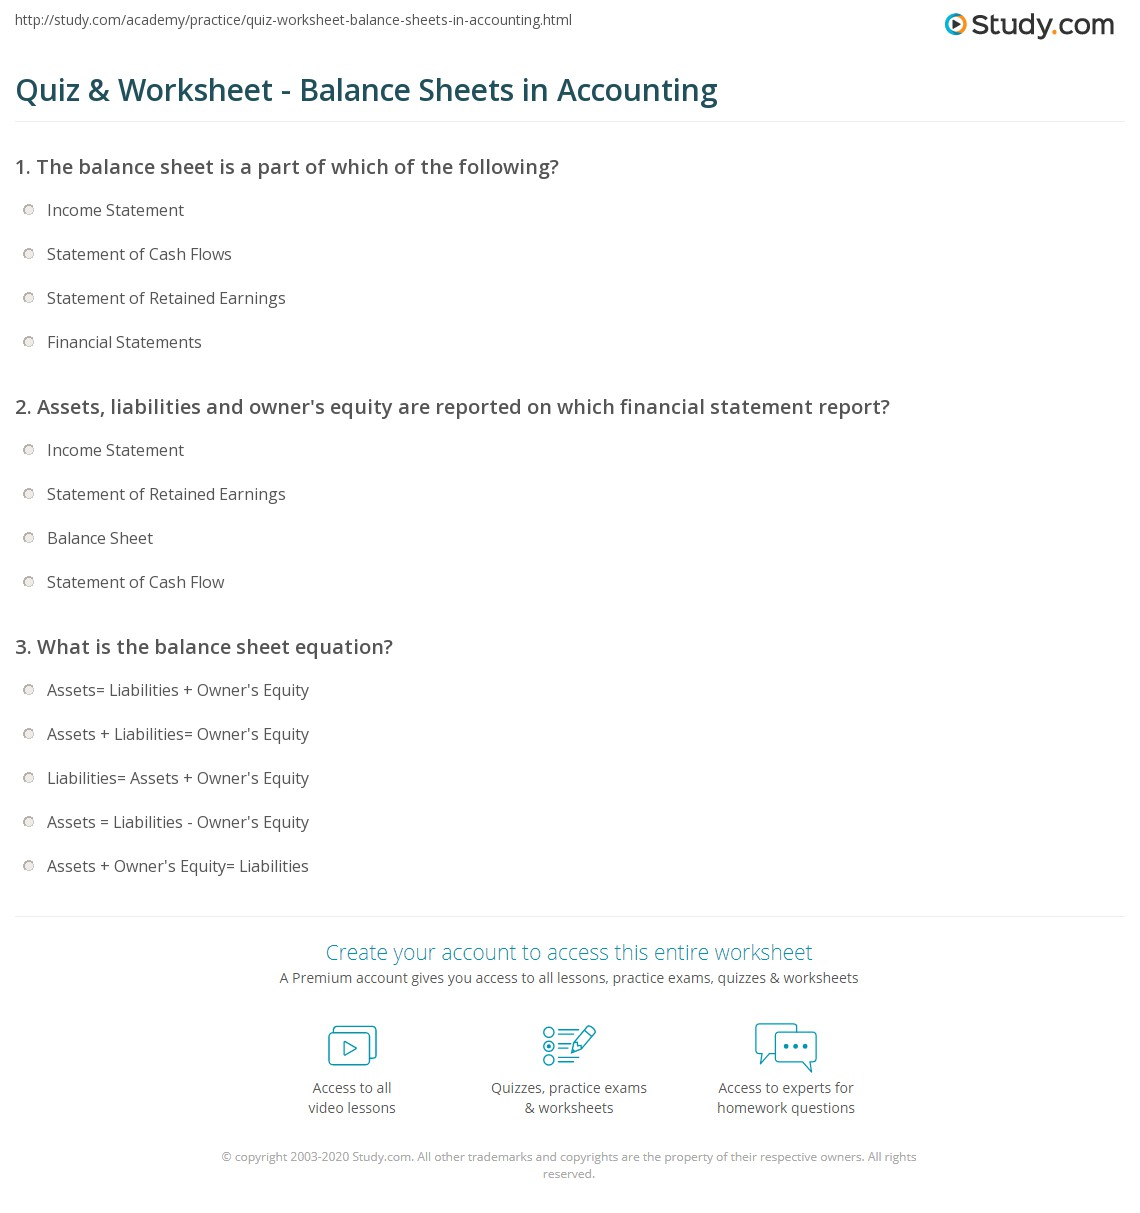 accounting study sheet Accounting – self study guide for staff of micro finance institutions lesson 2 the balance sheet objectives the purpose of this lesson is to introduce the balance sheet and explain its.